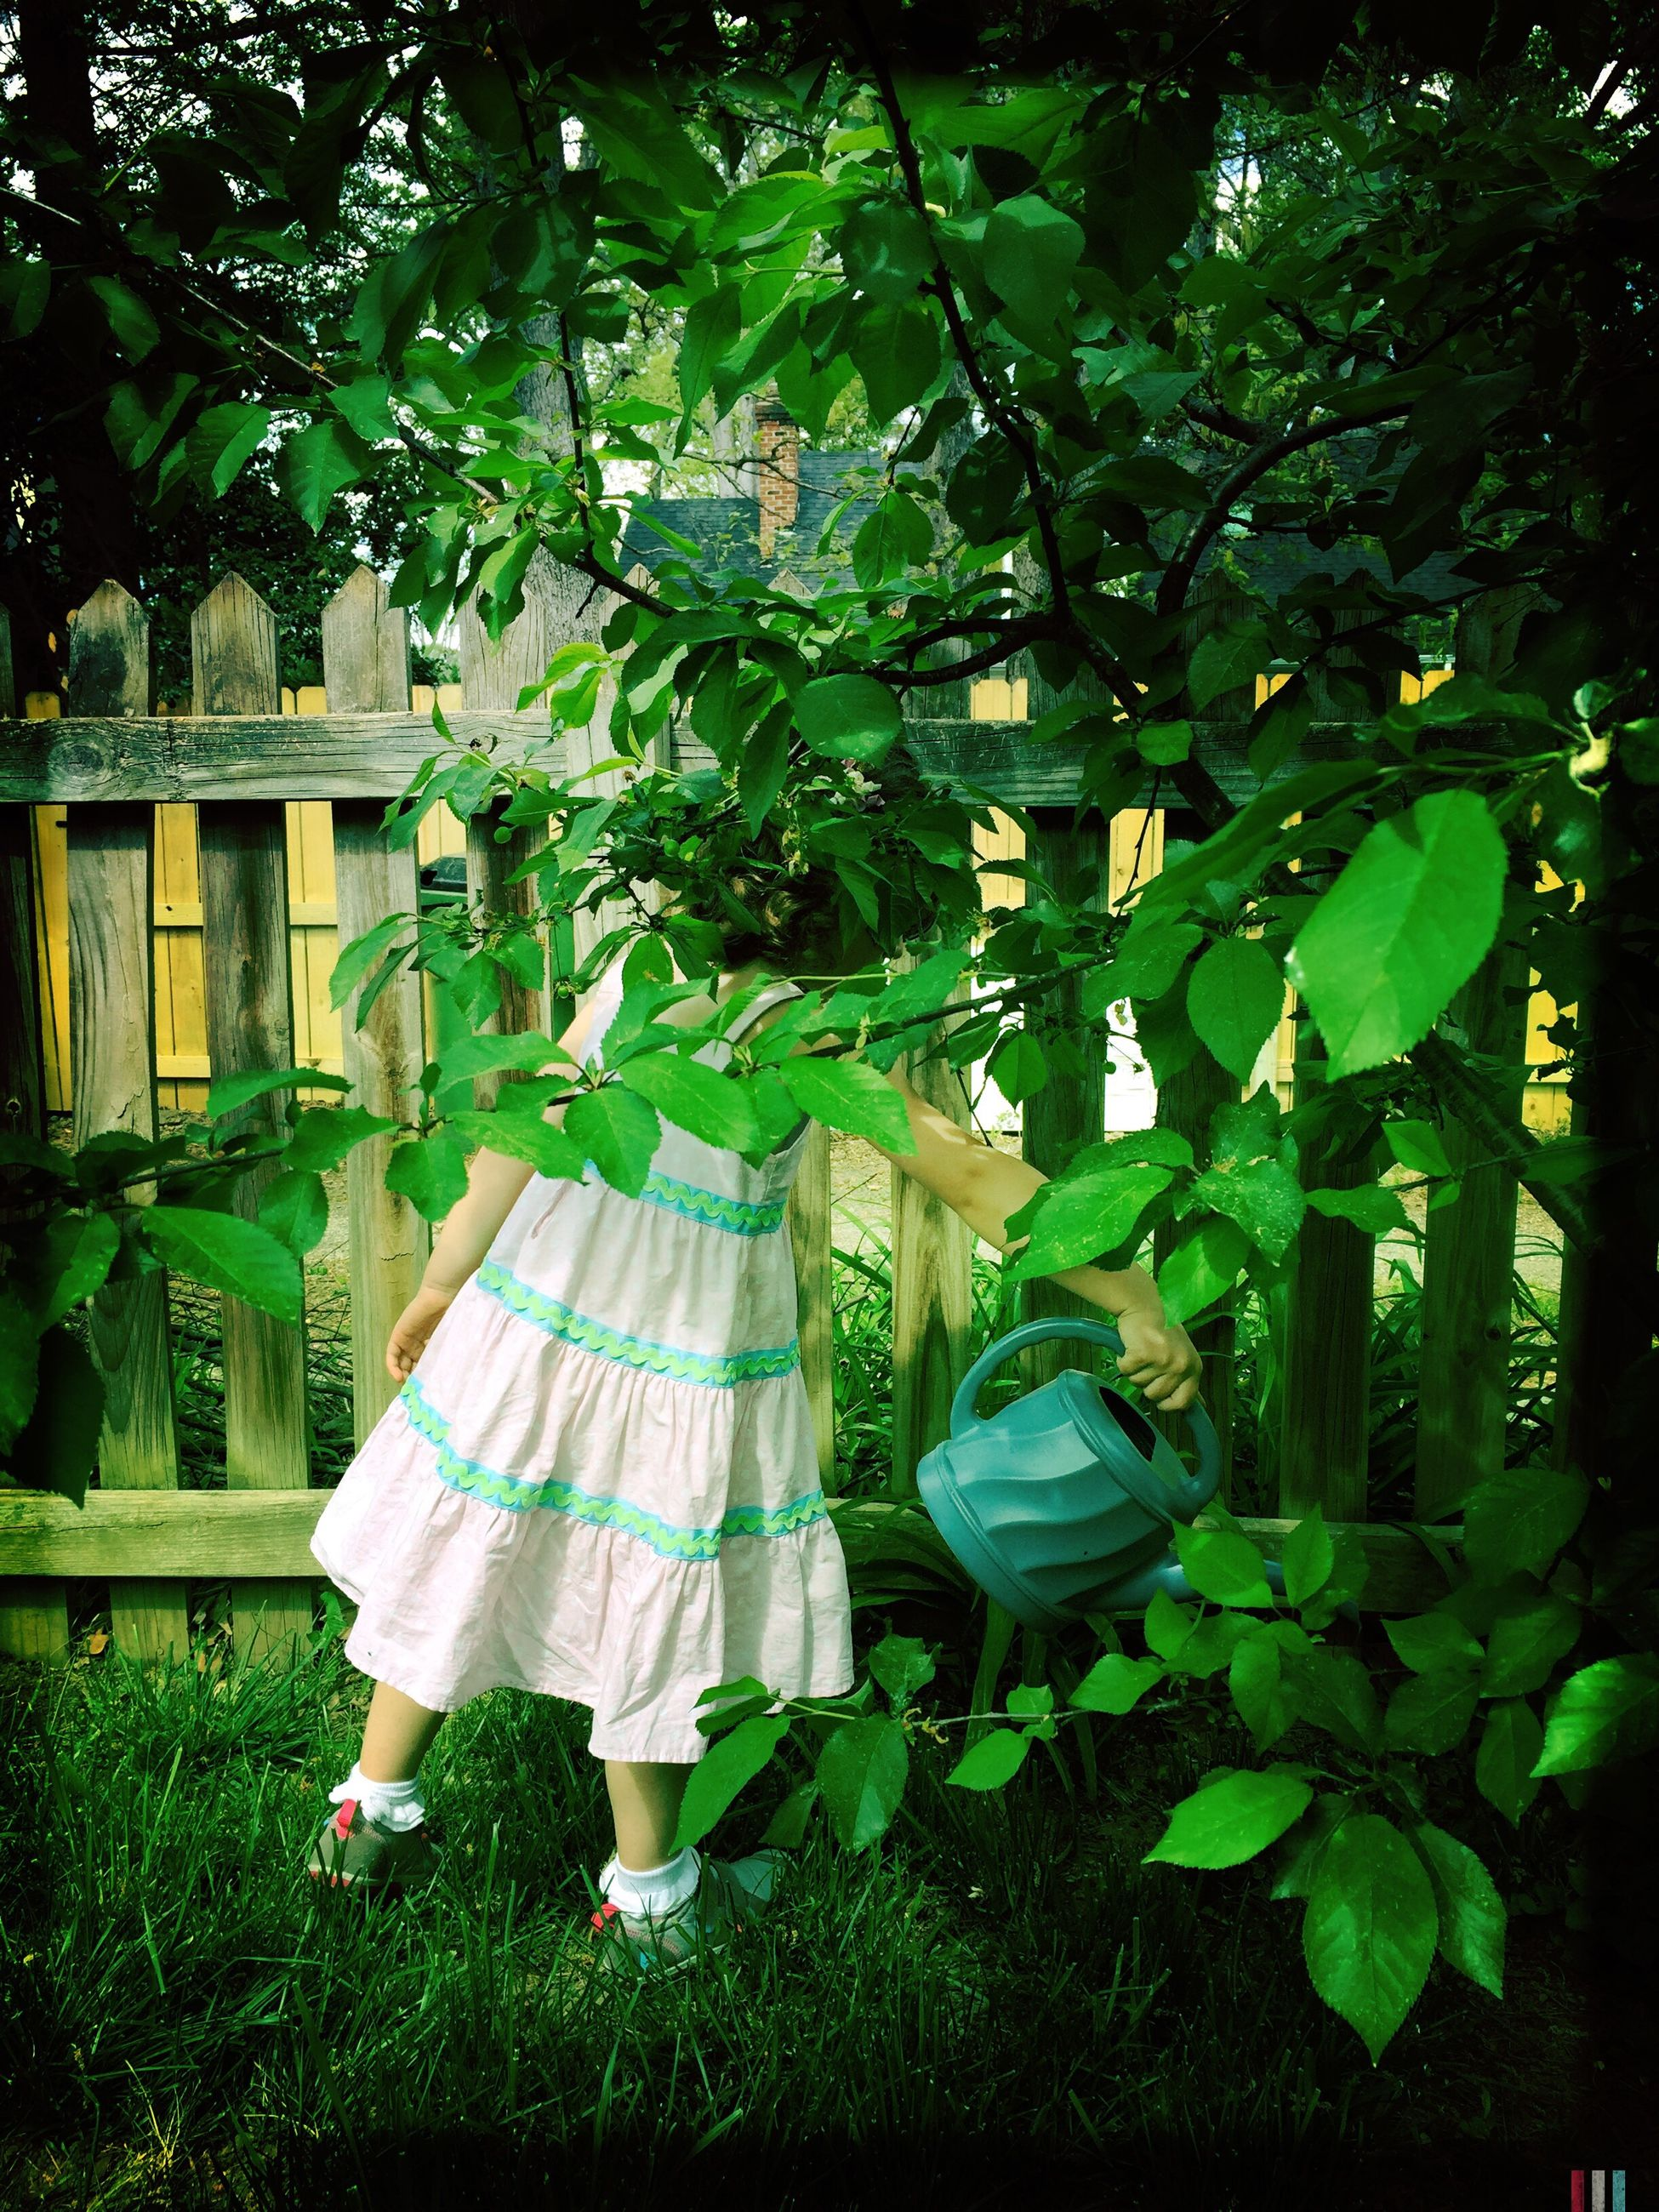 front or back yard, tree, day, rear view, outdoors, growth, green color, nature, grass, full length, one person, wedding dress, people